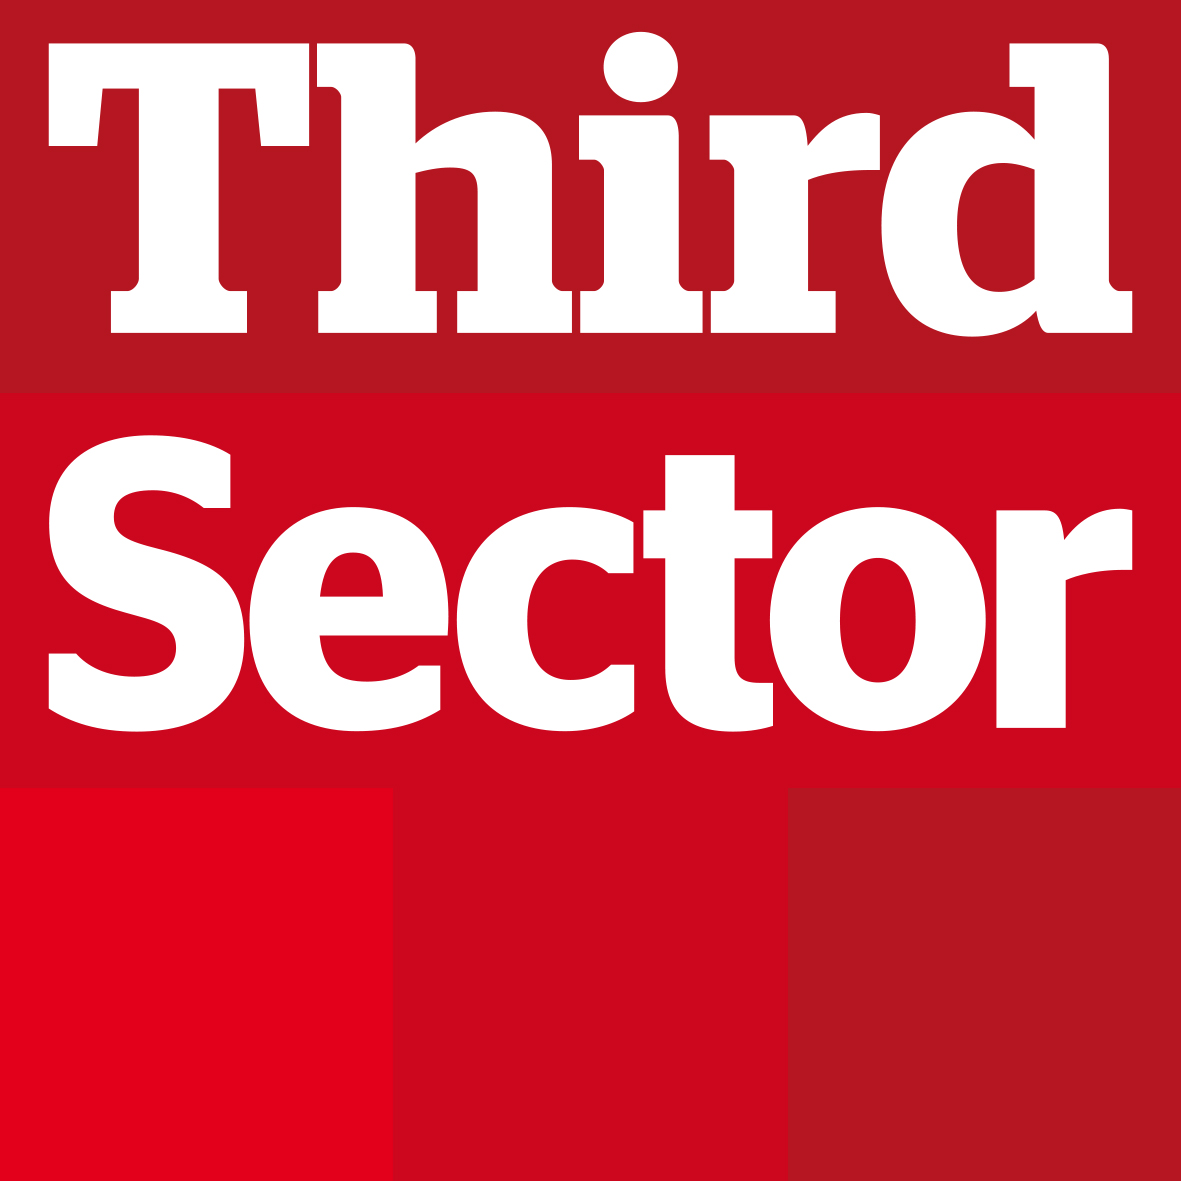 Third Sector magazine logo